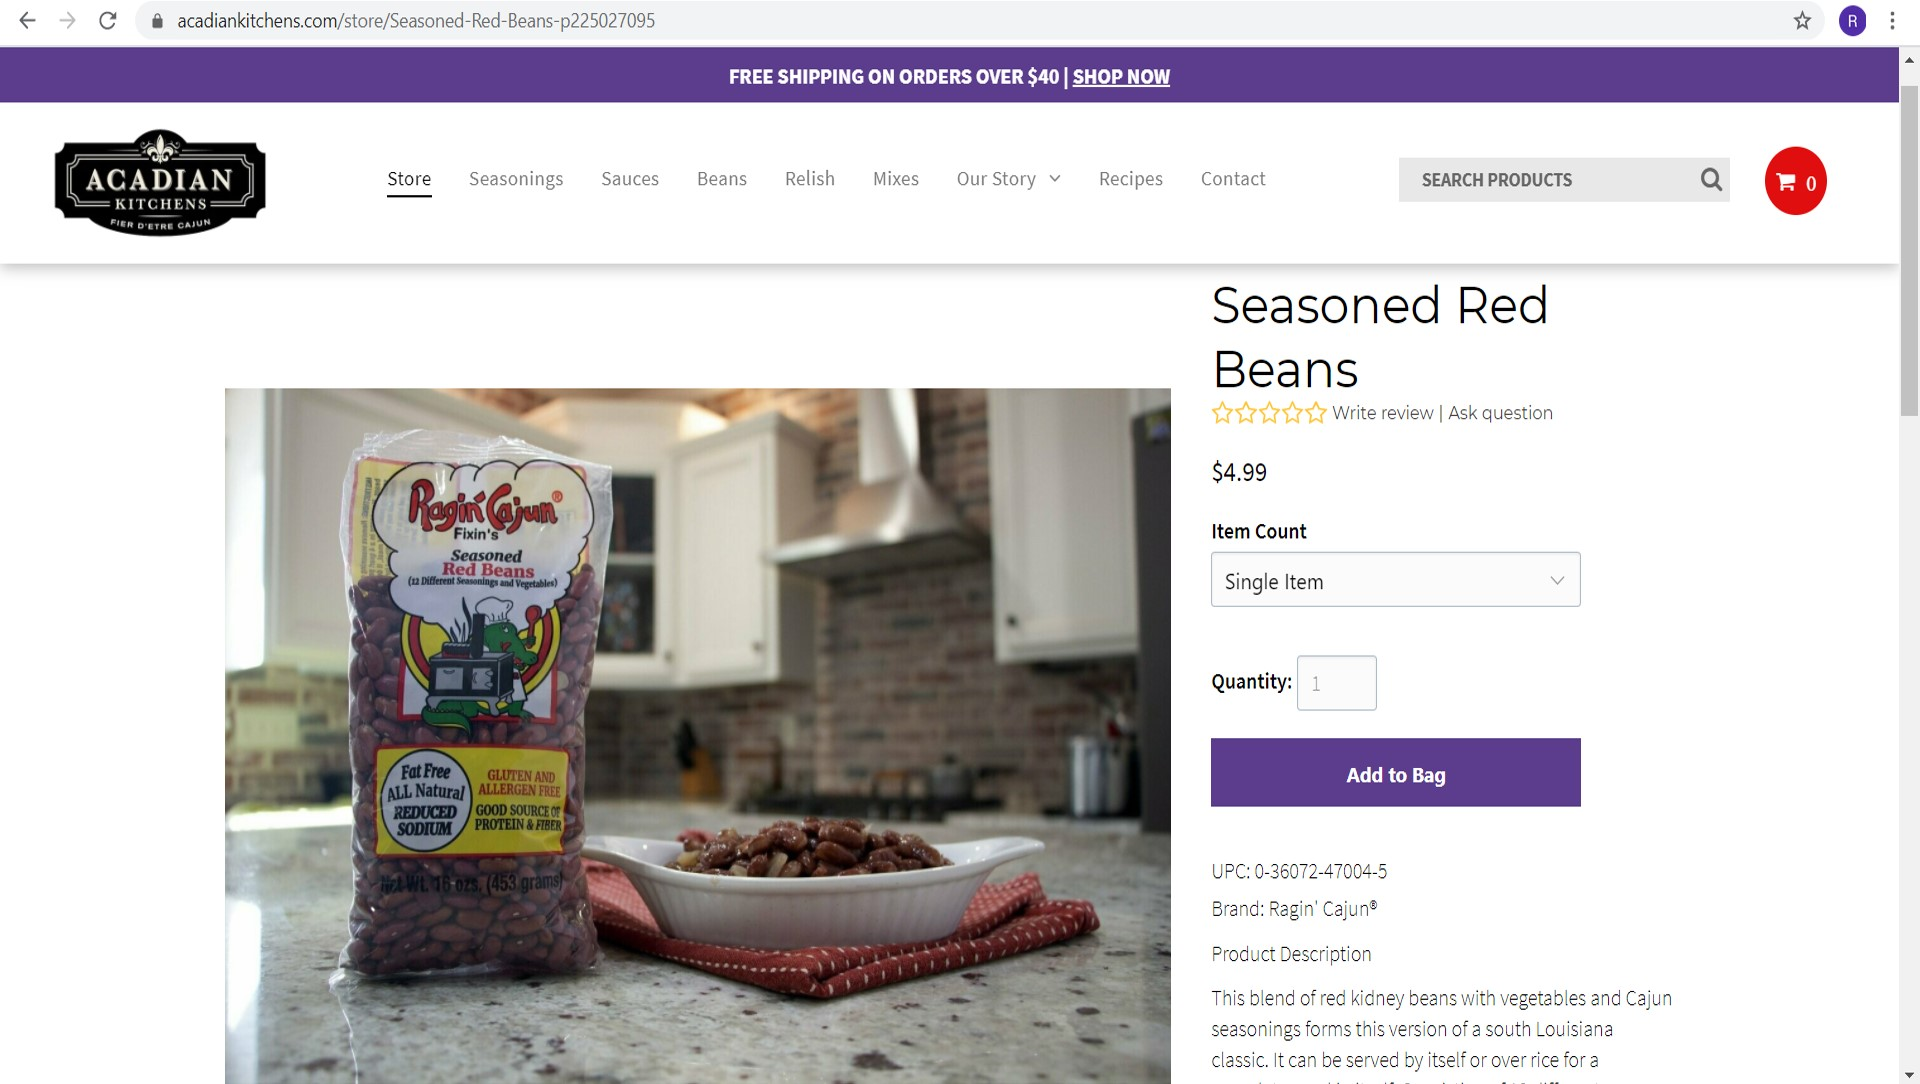 New Acadian Kitchens Website Beans